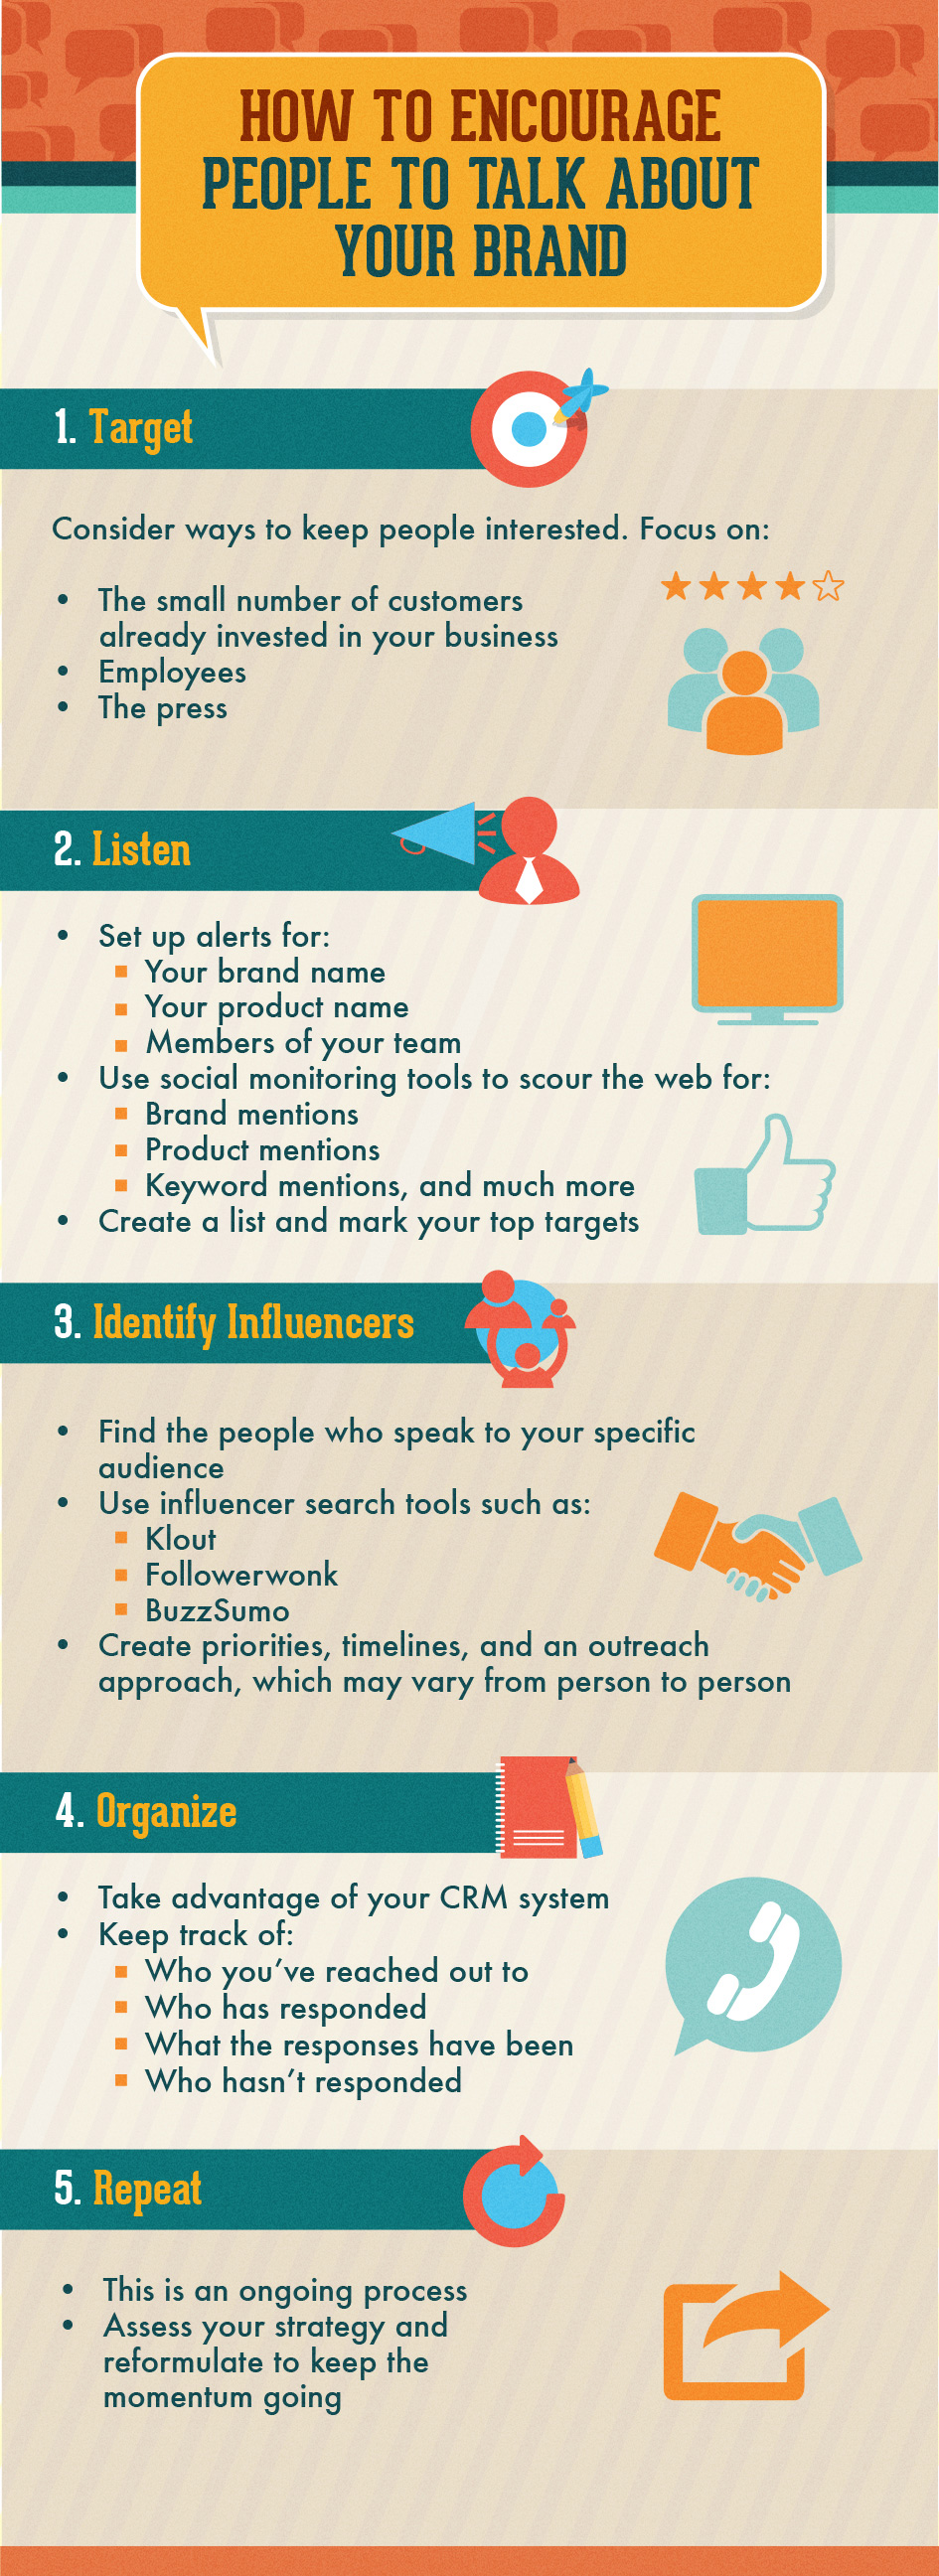 delight your customers, word of mouth marketing